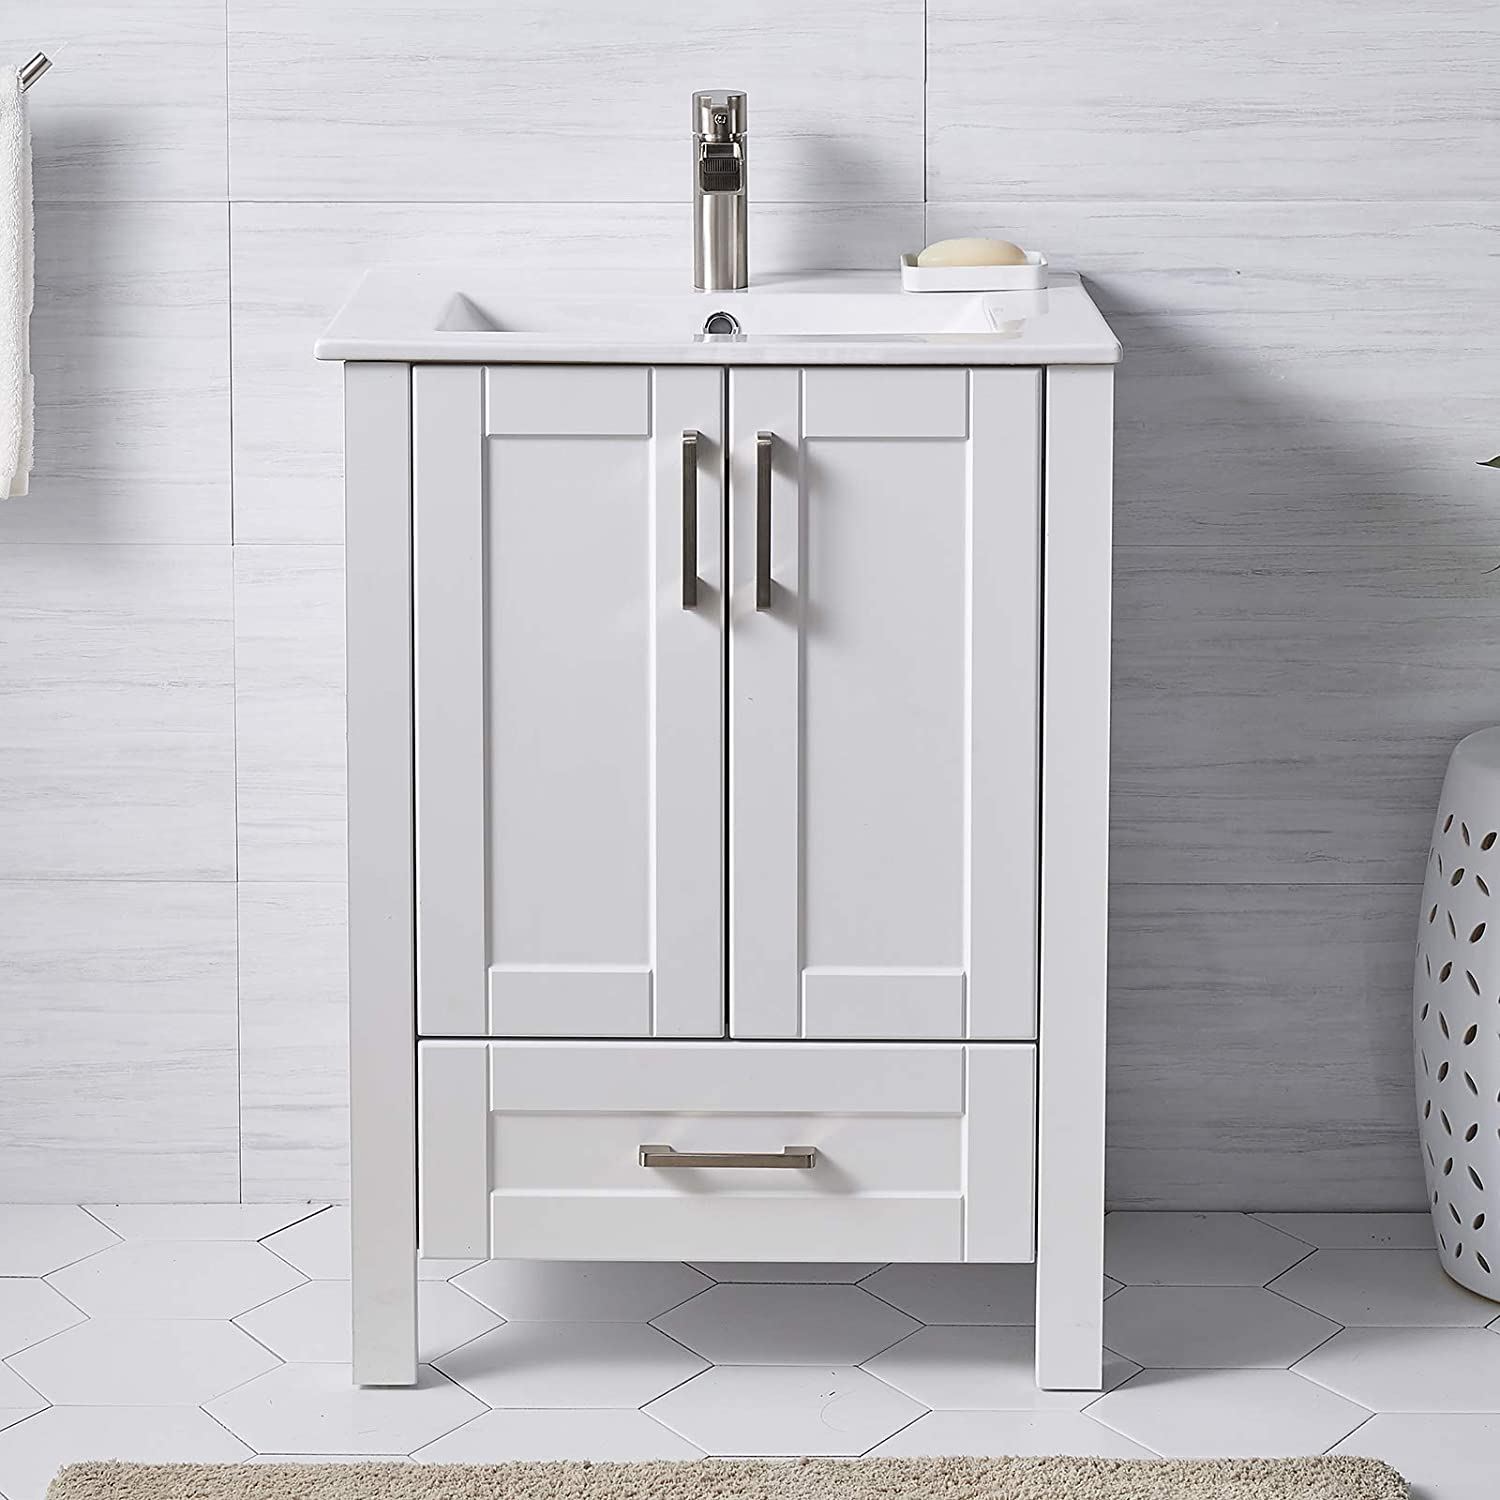 Buy Modern Small Bathroom Vanity 24 Inch 2 Doors White Bathroom Cabinet Set With Sink Combo Wood Storage Cabinet With Single Hole Undermount Ceramic Sink Online In Vietnam B097bf2frz